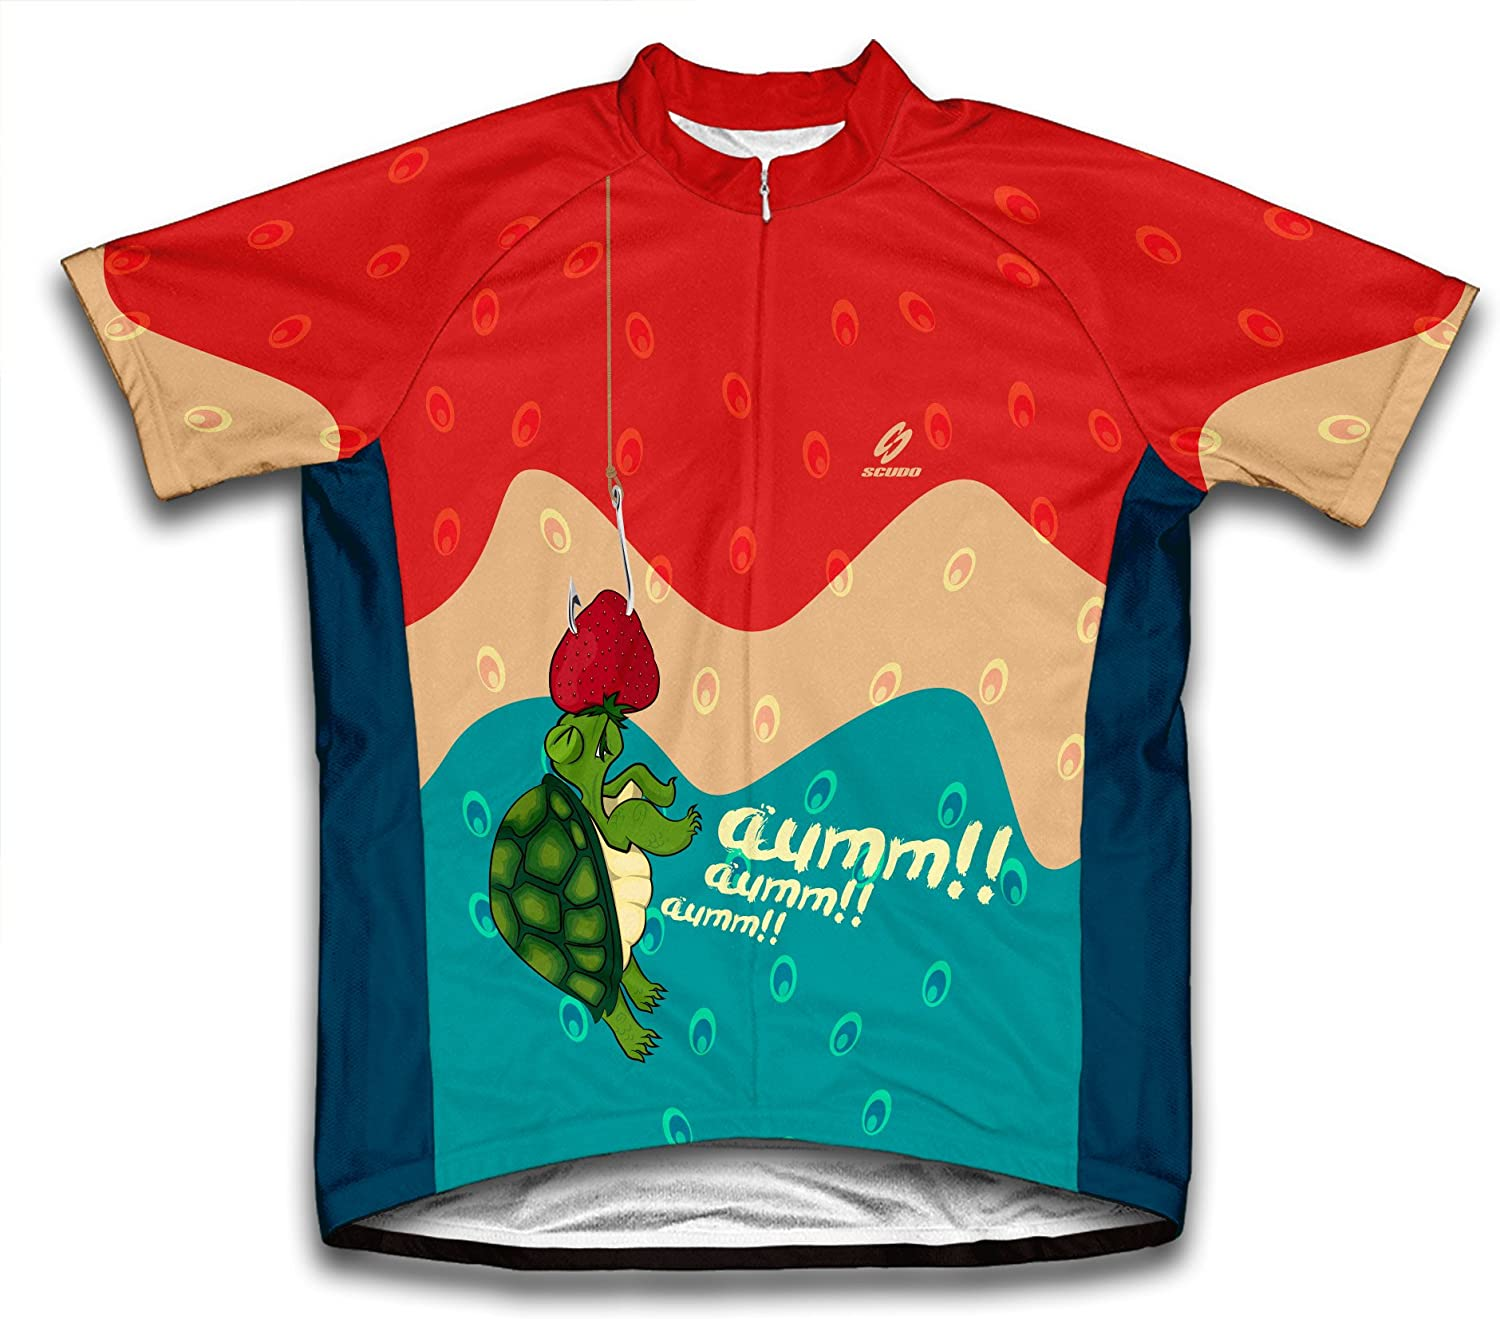 ScudoPro Oops Turtle Short Sleeve Cycling Jersey for Men - Size 2XL